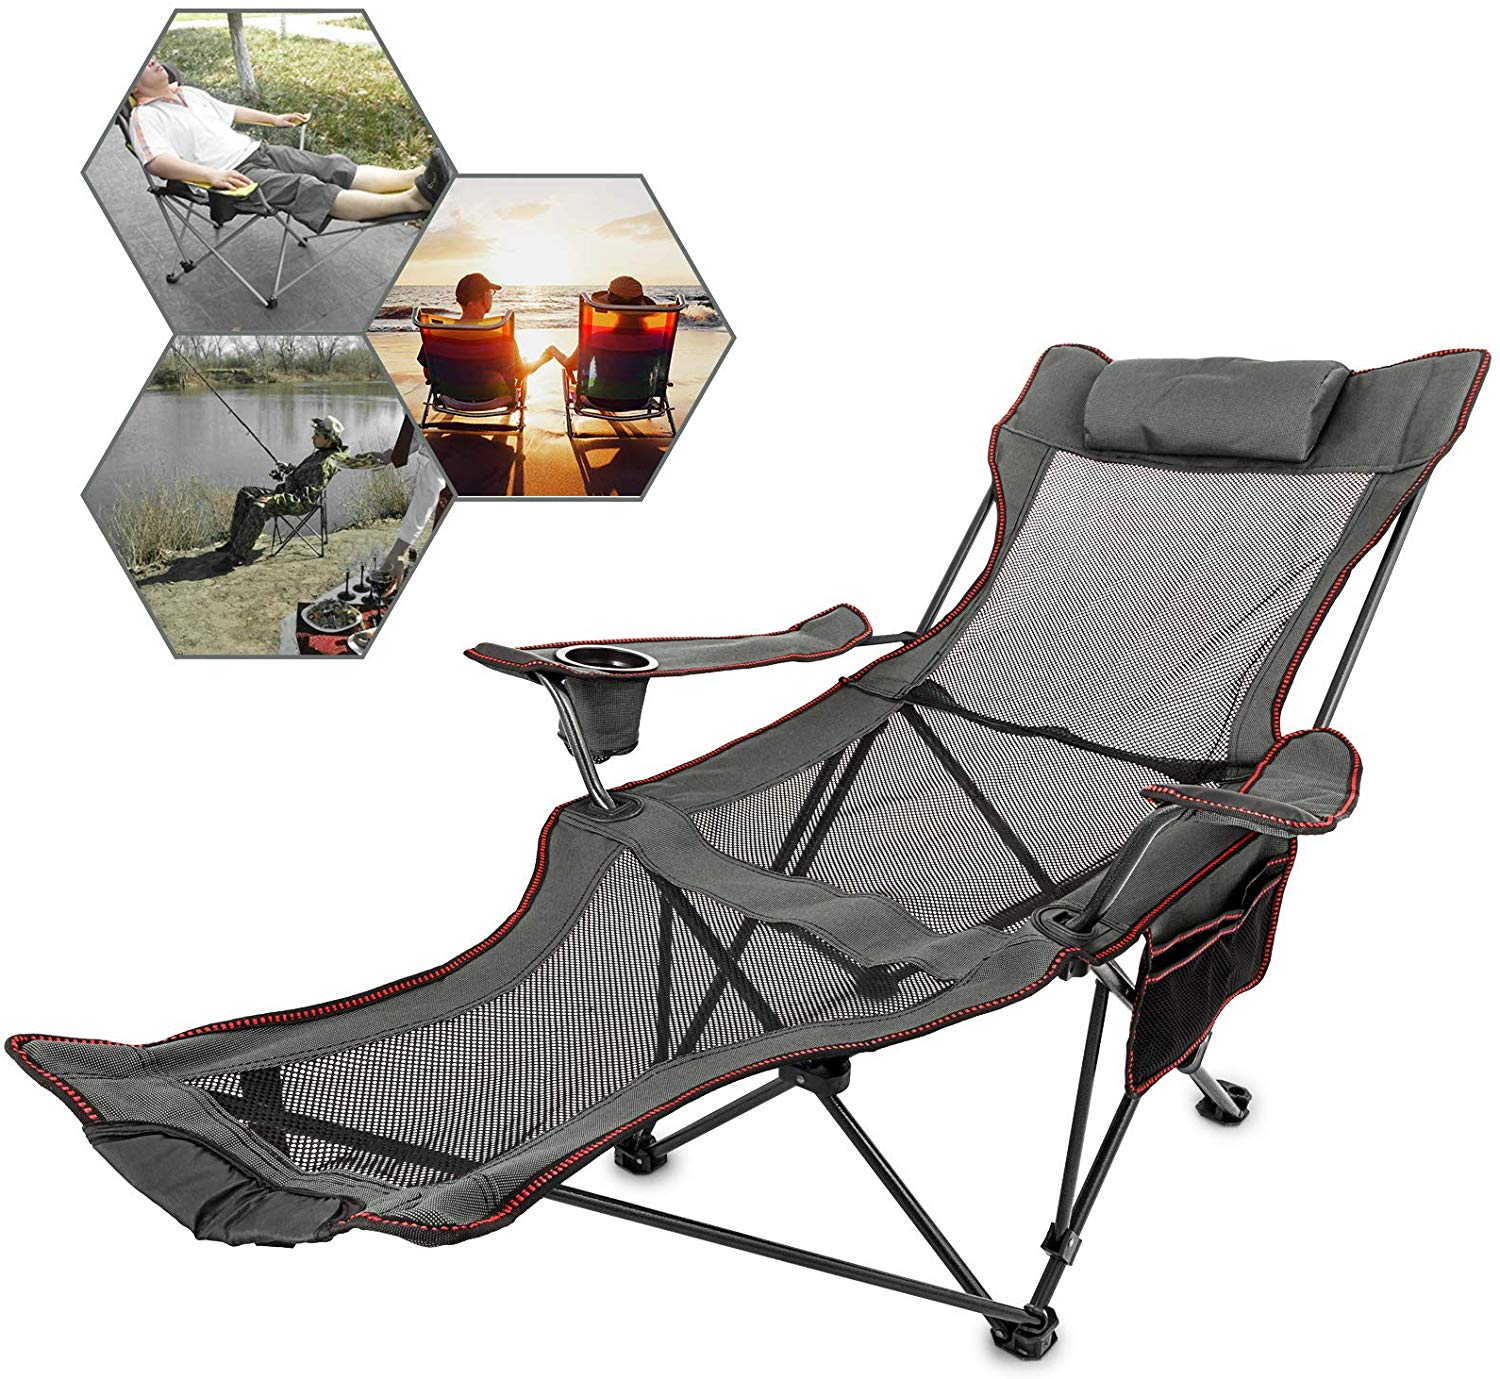 Top 10 Best Reclining Camping Chairs 2021 Reviews 2